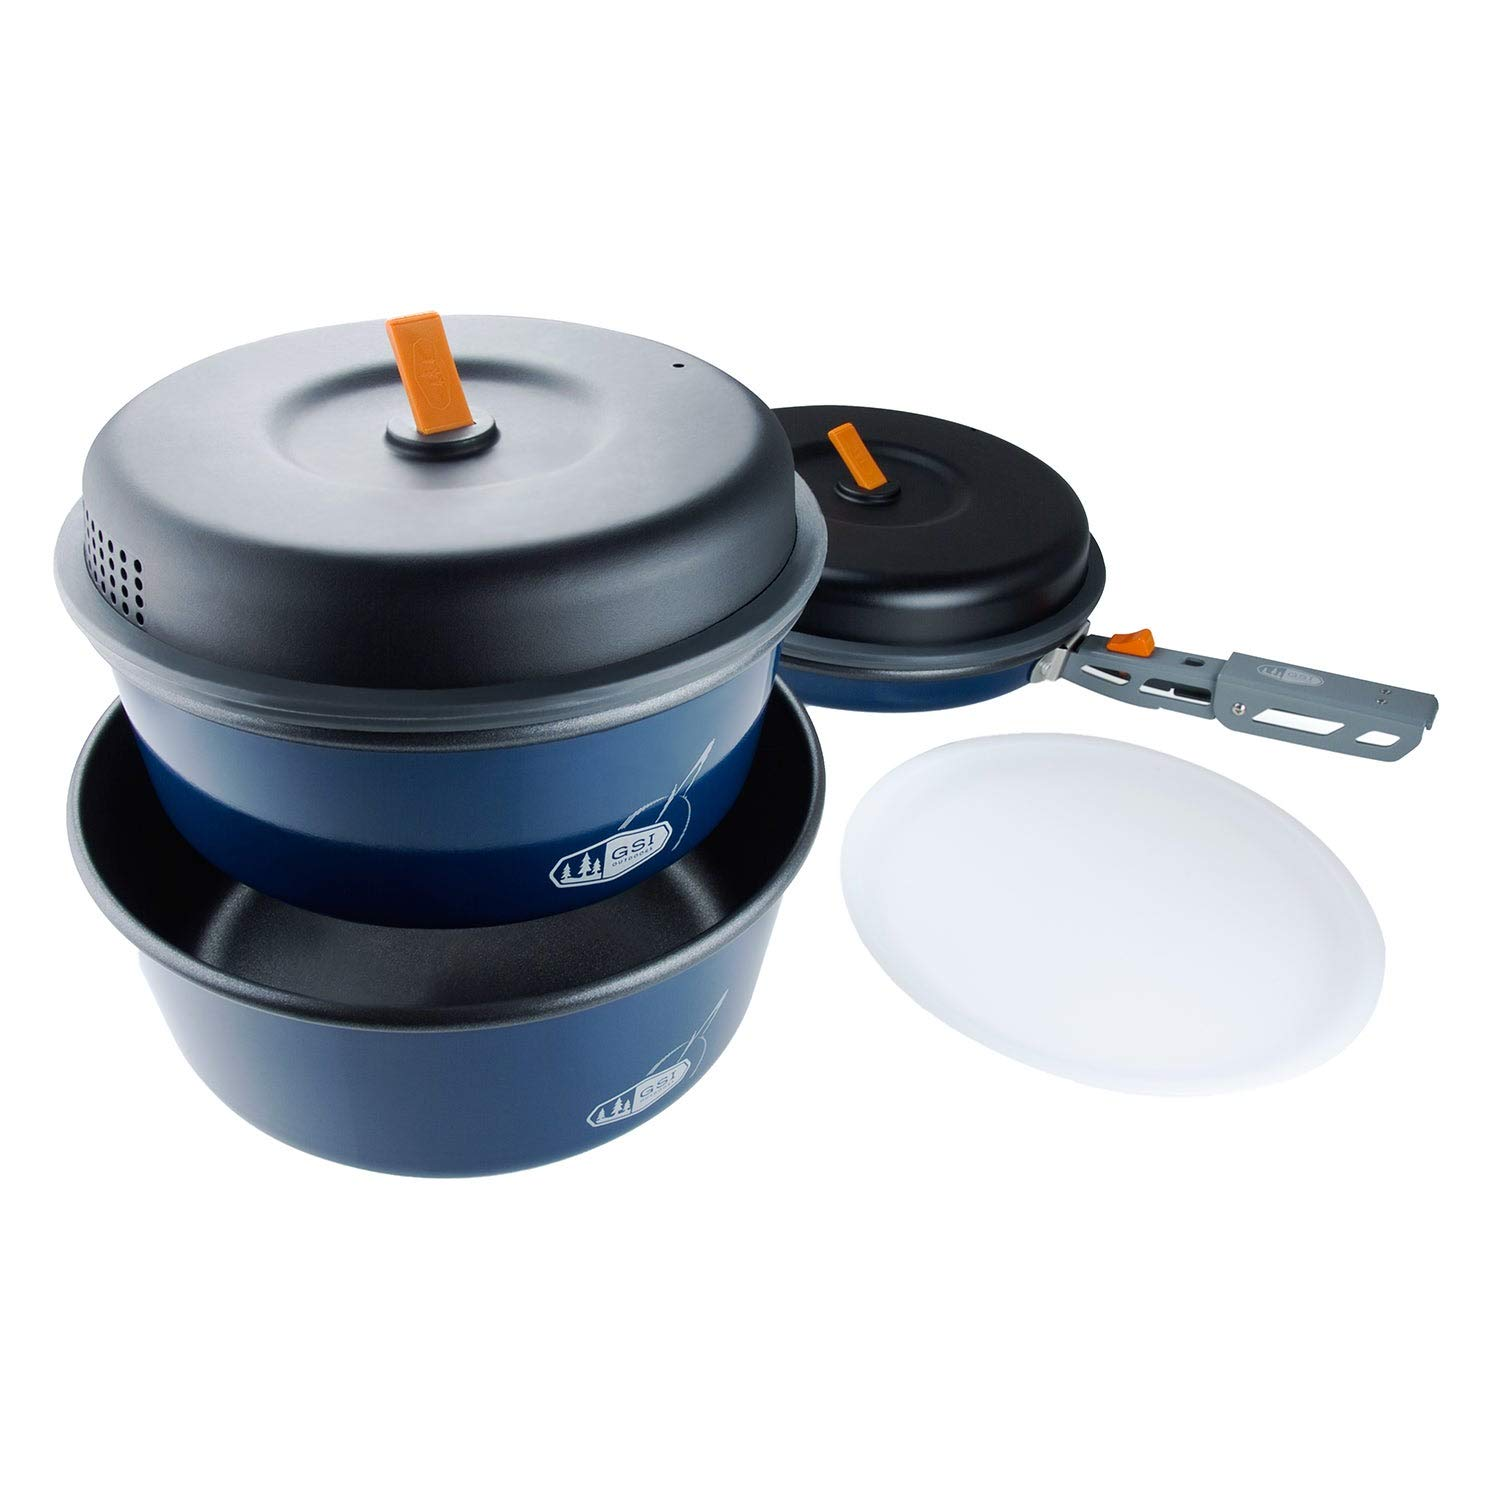 GSI Outdoors Bugaboo Base Camper Outdoor Cook Set, Small by GSI Outdoors